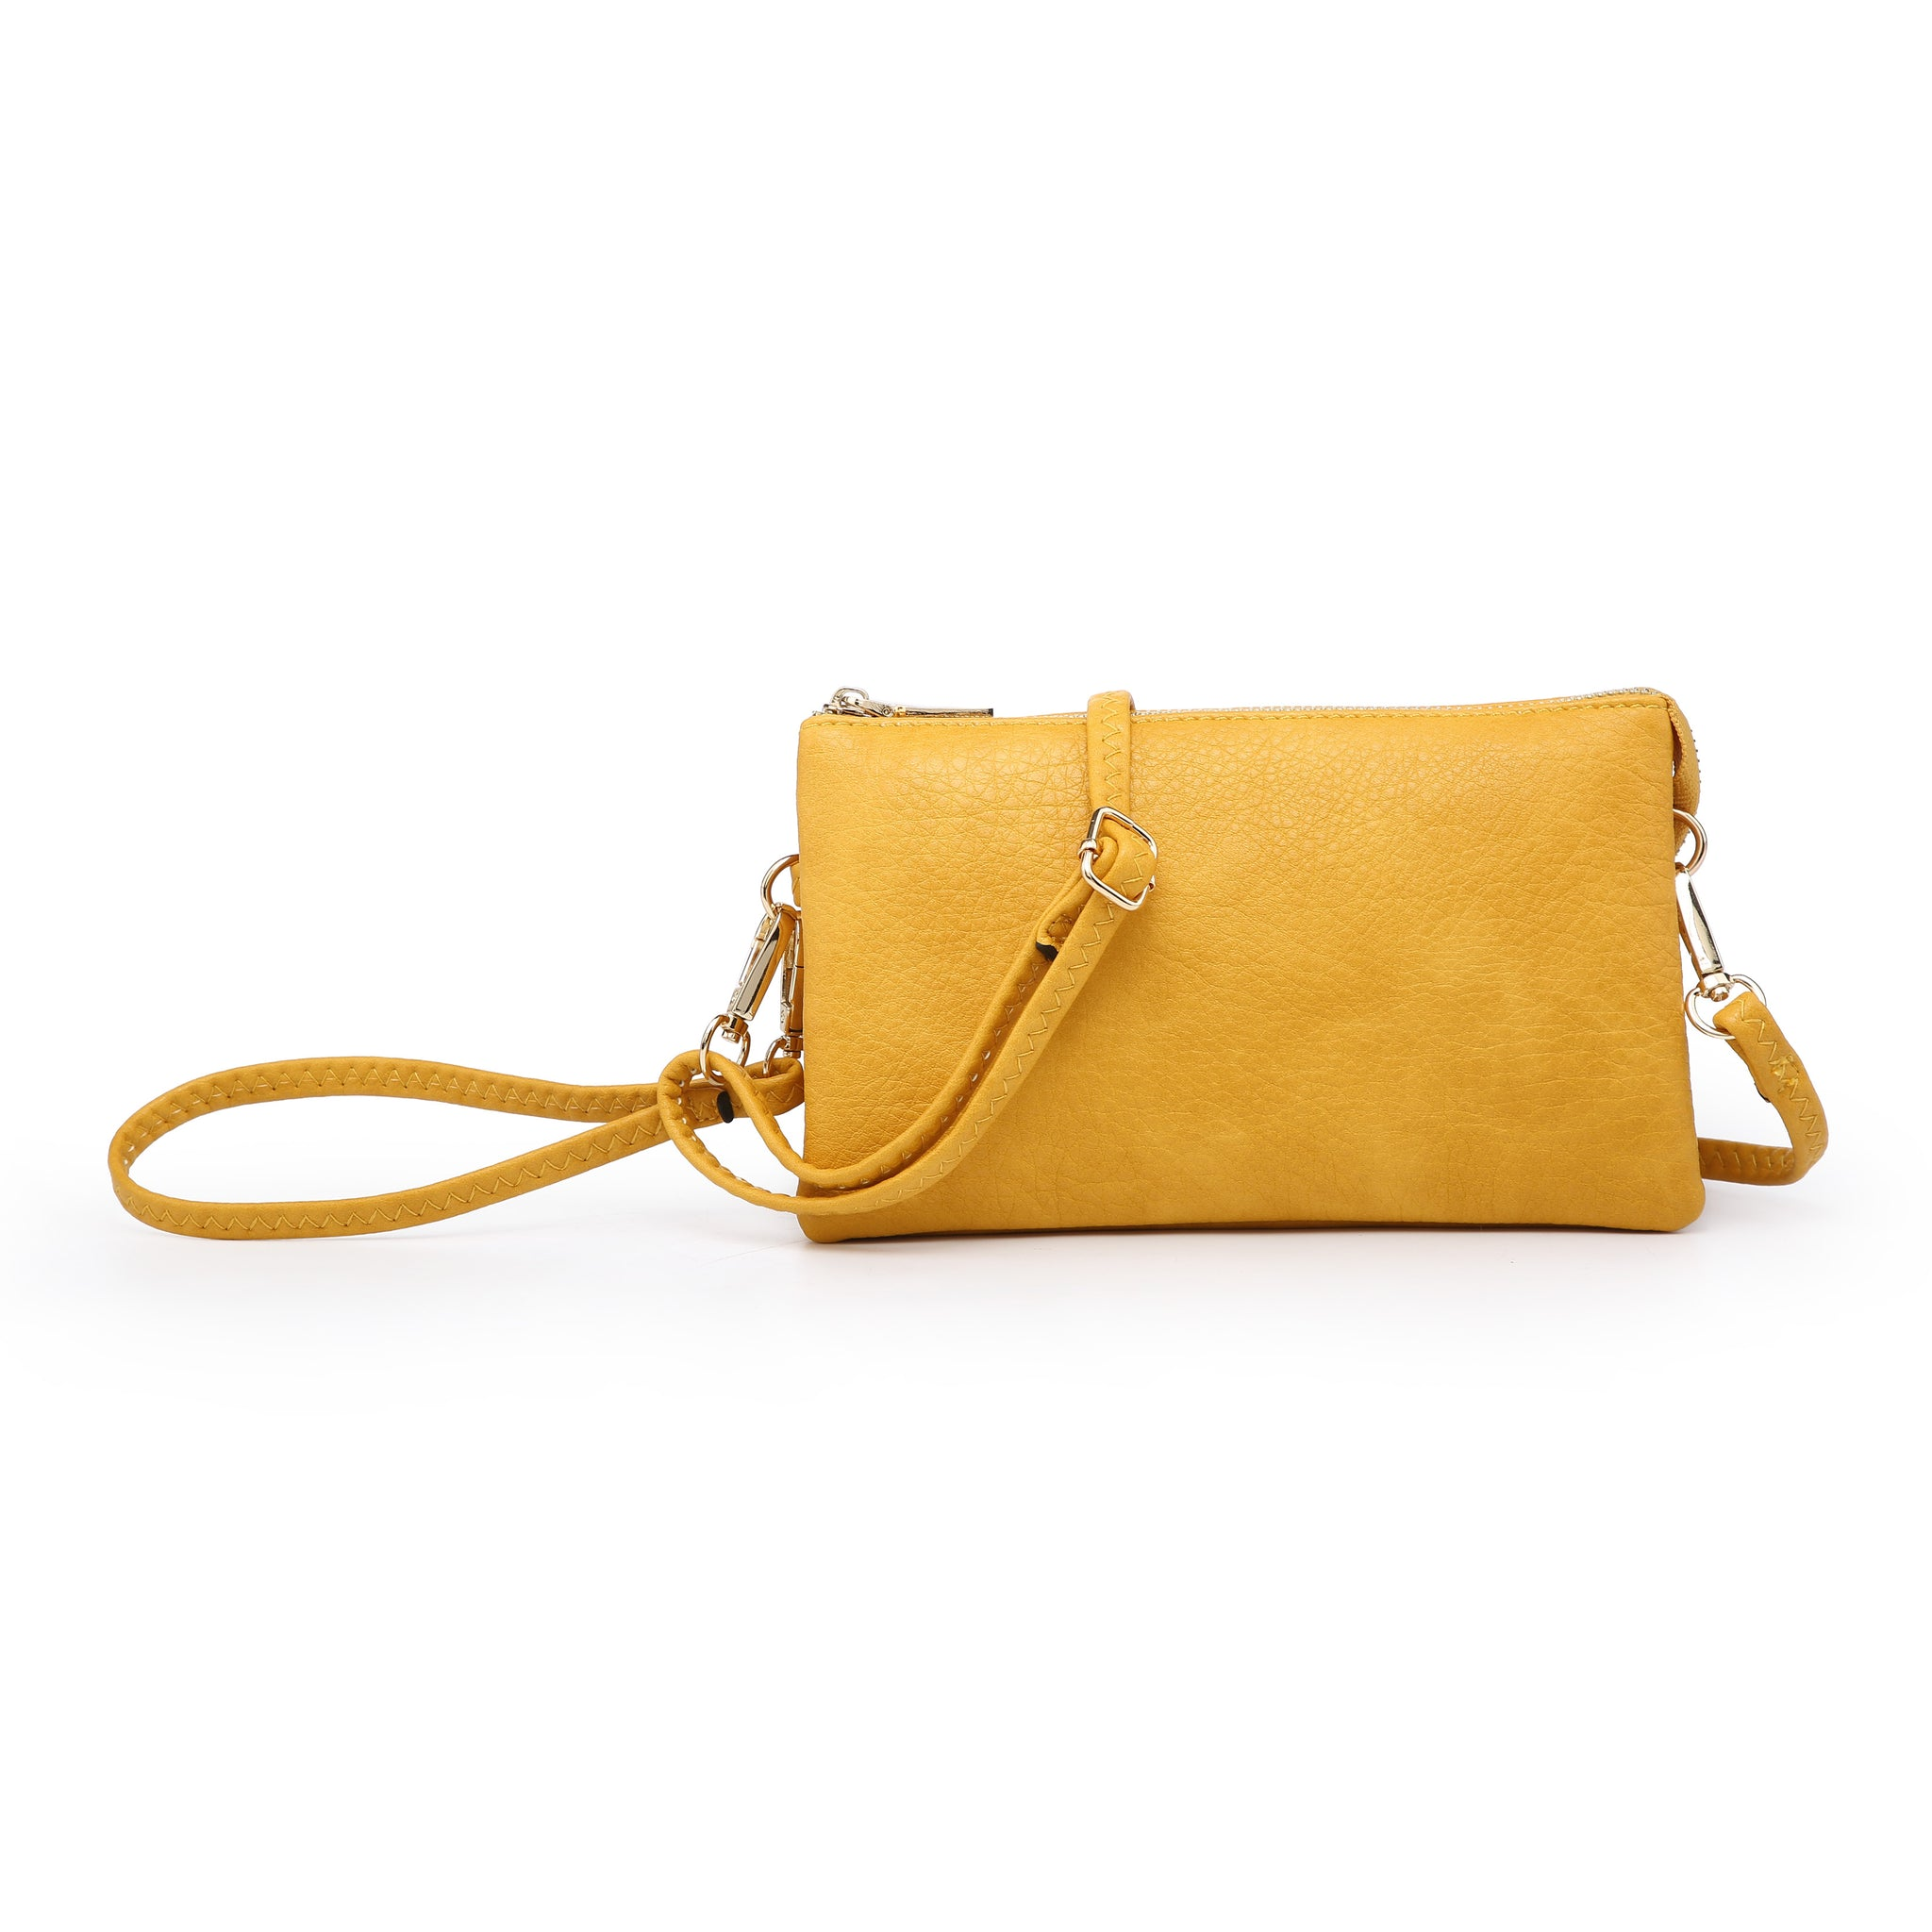 Multi-compartment Wristlet Crossbody in Yellow